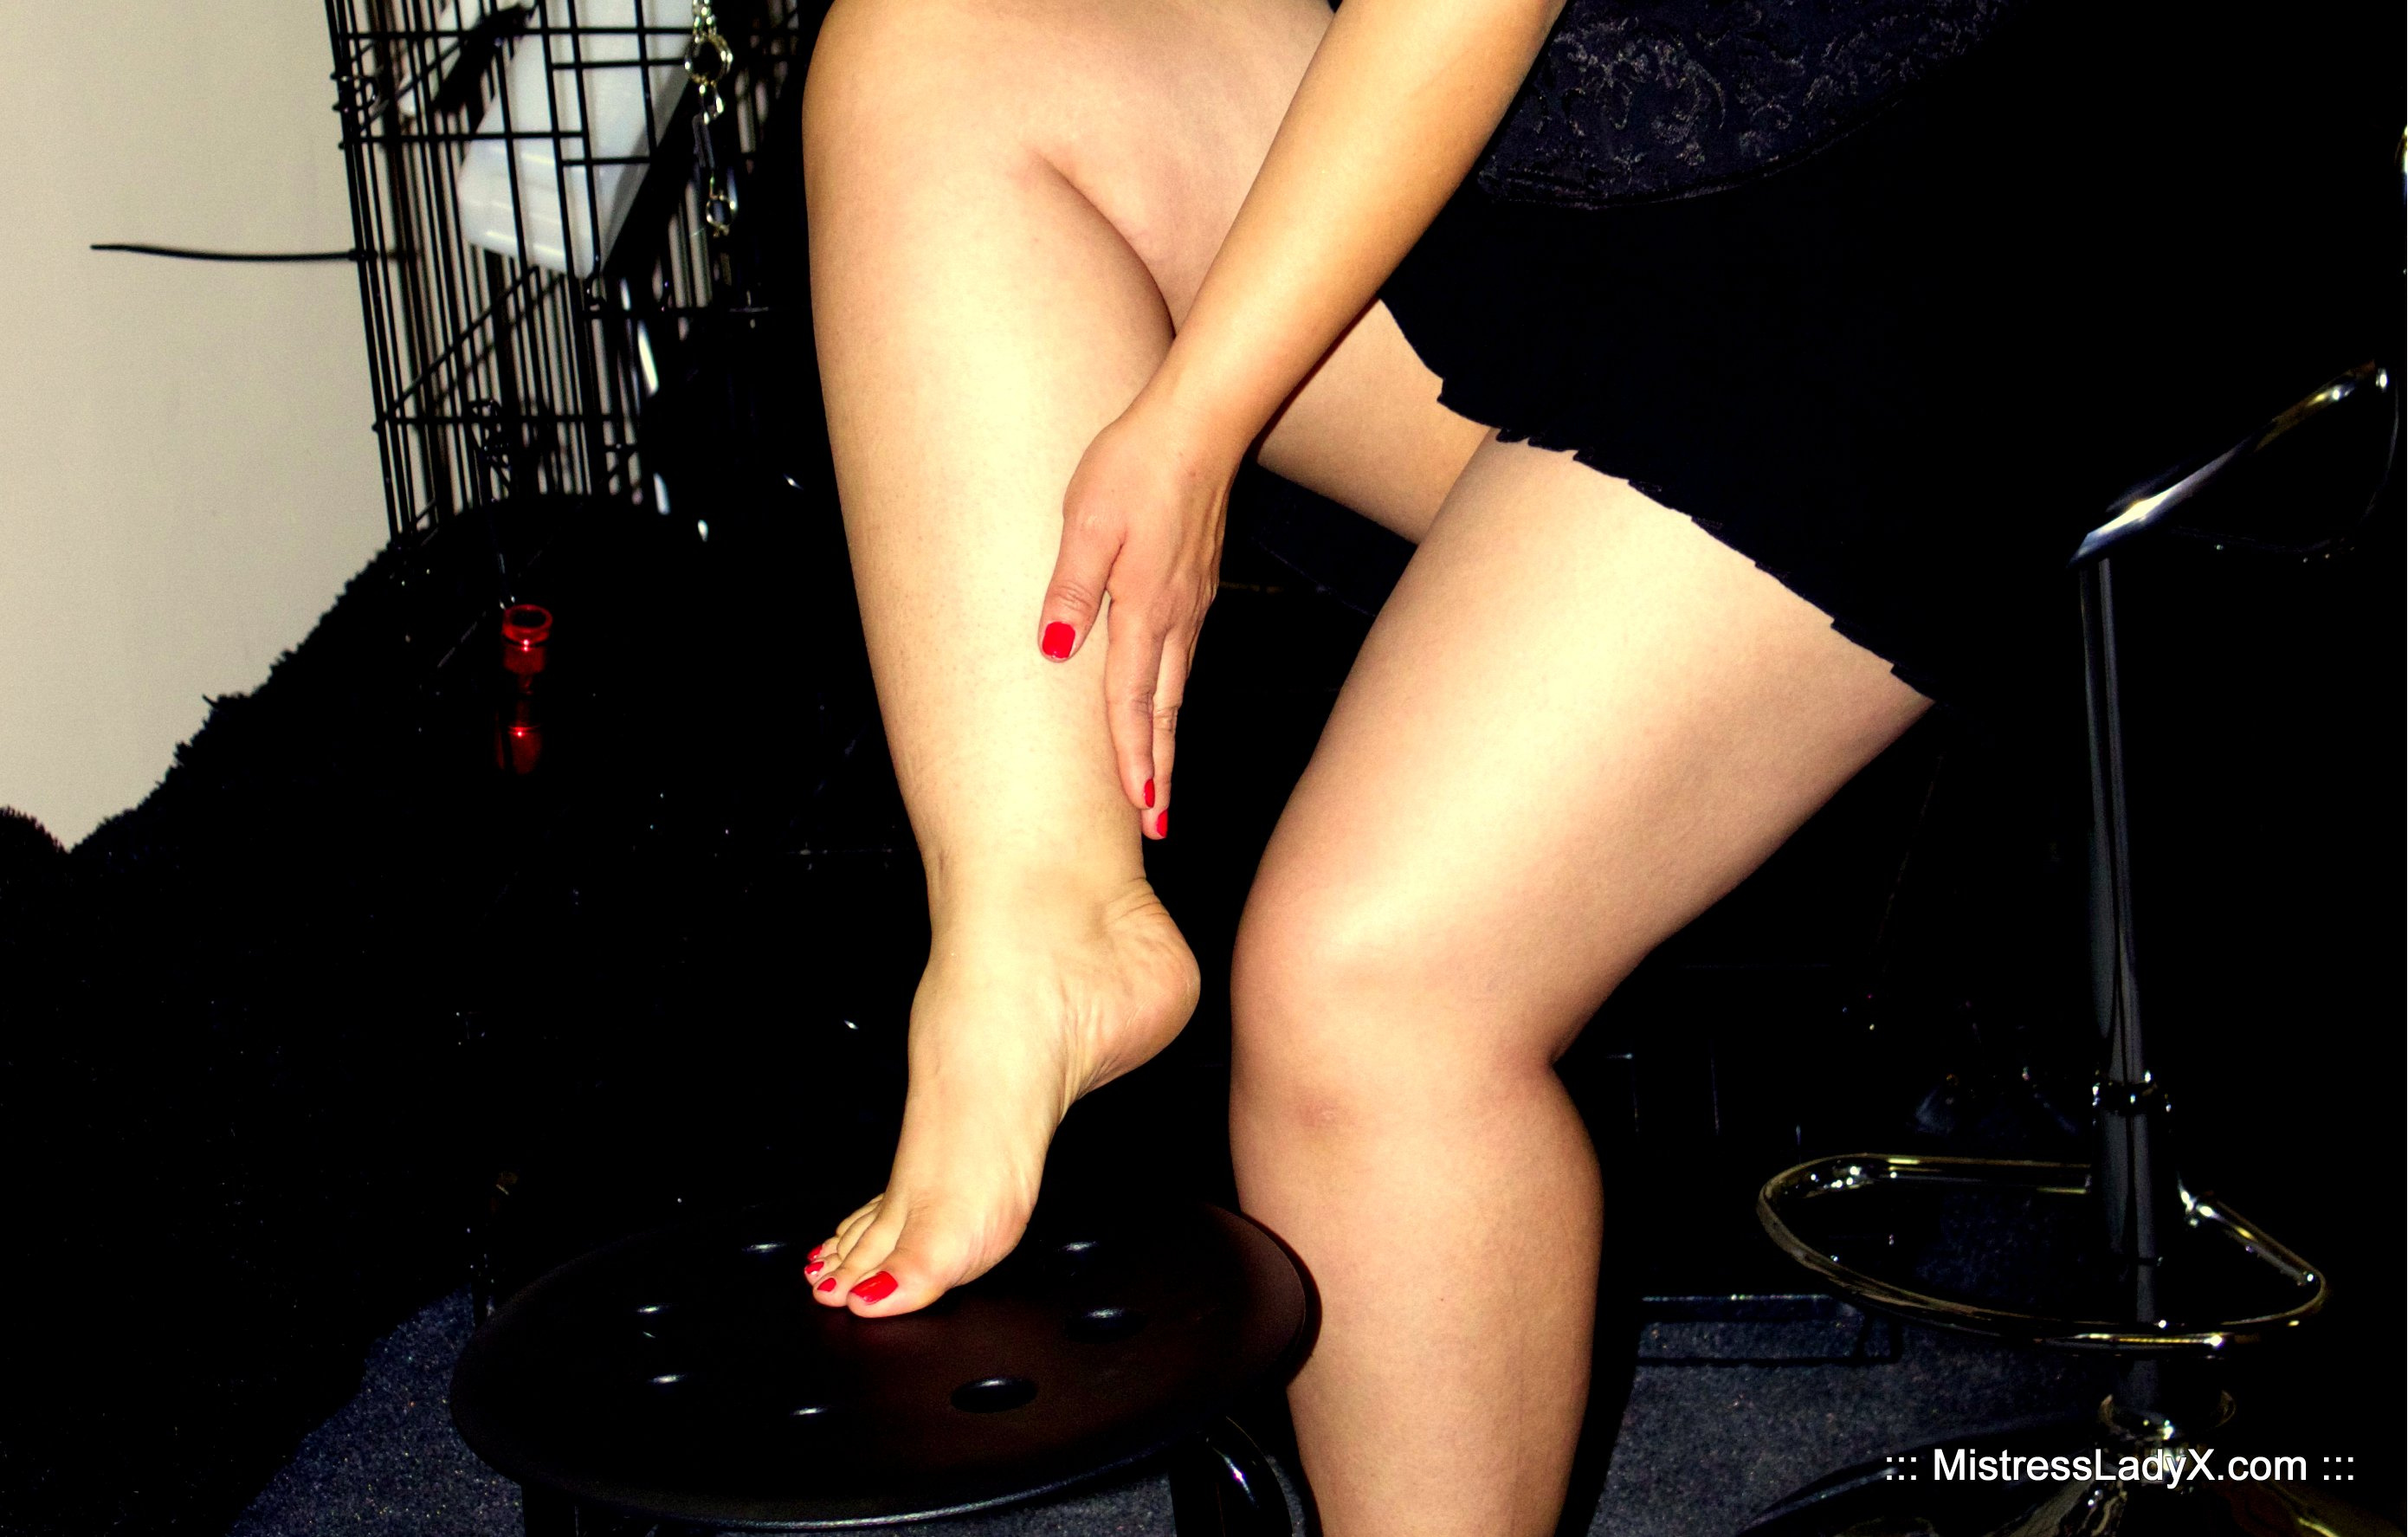 Mistress Lady X, Foot Fetish